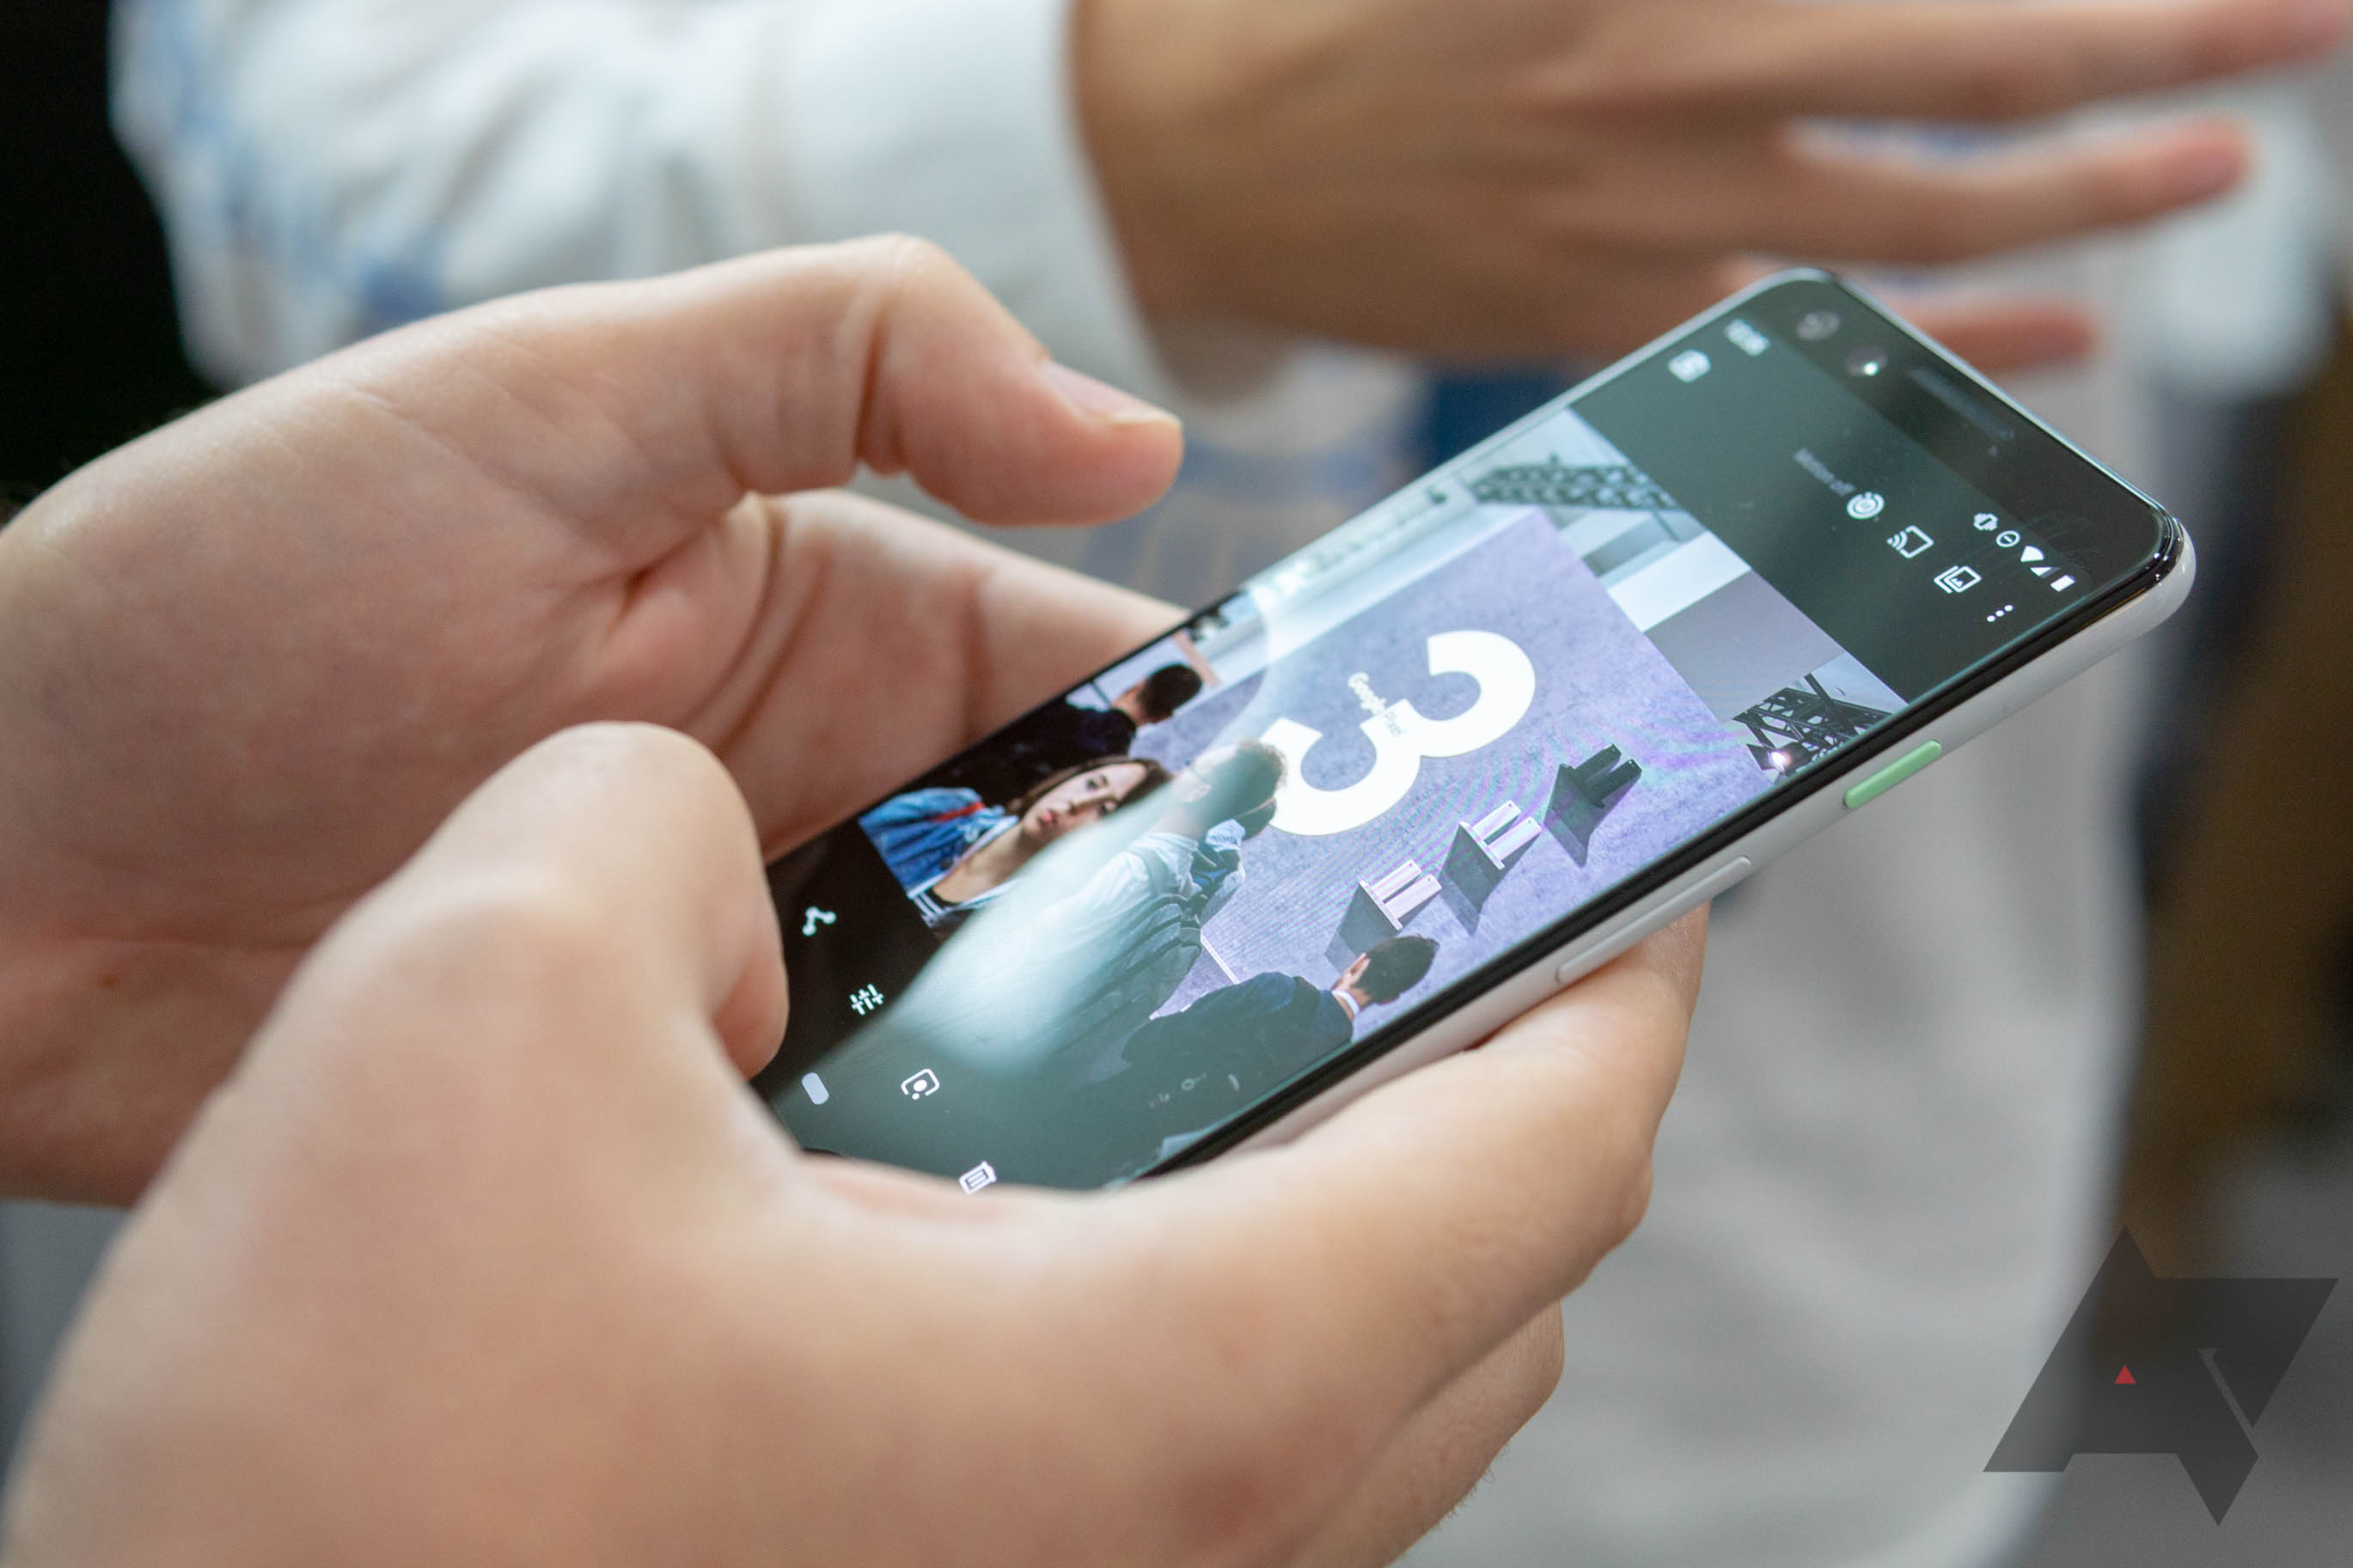 Pixel 3 XL iFixit teardown confirms Samsung display and lots of glue